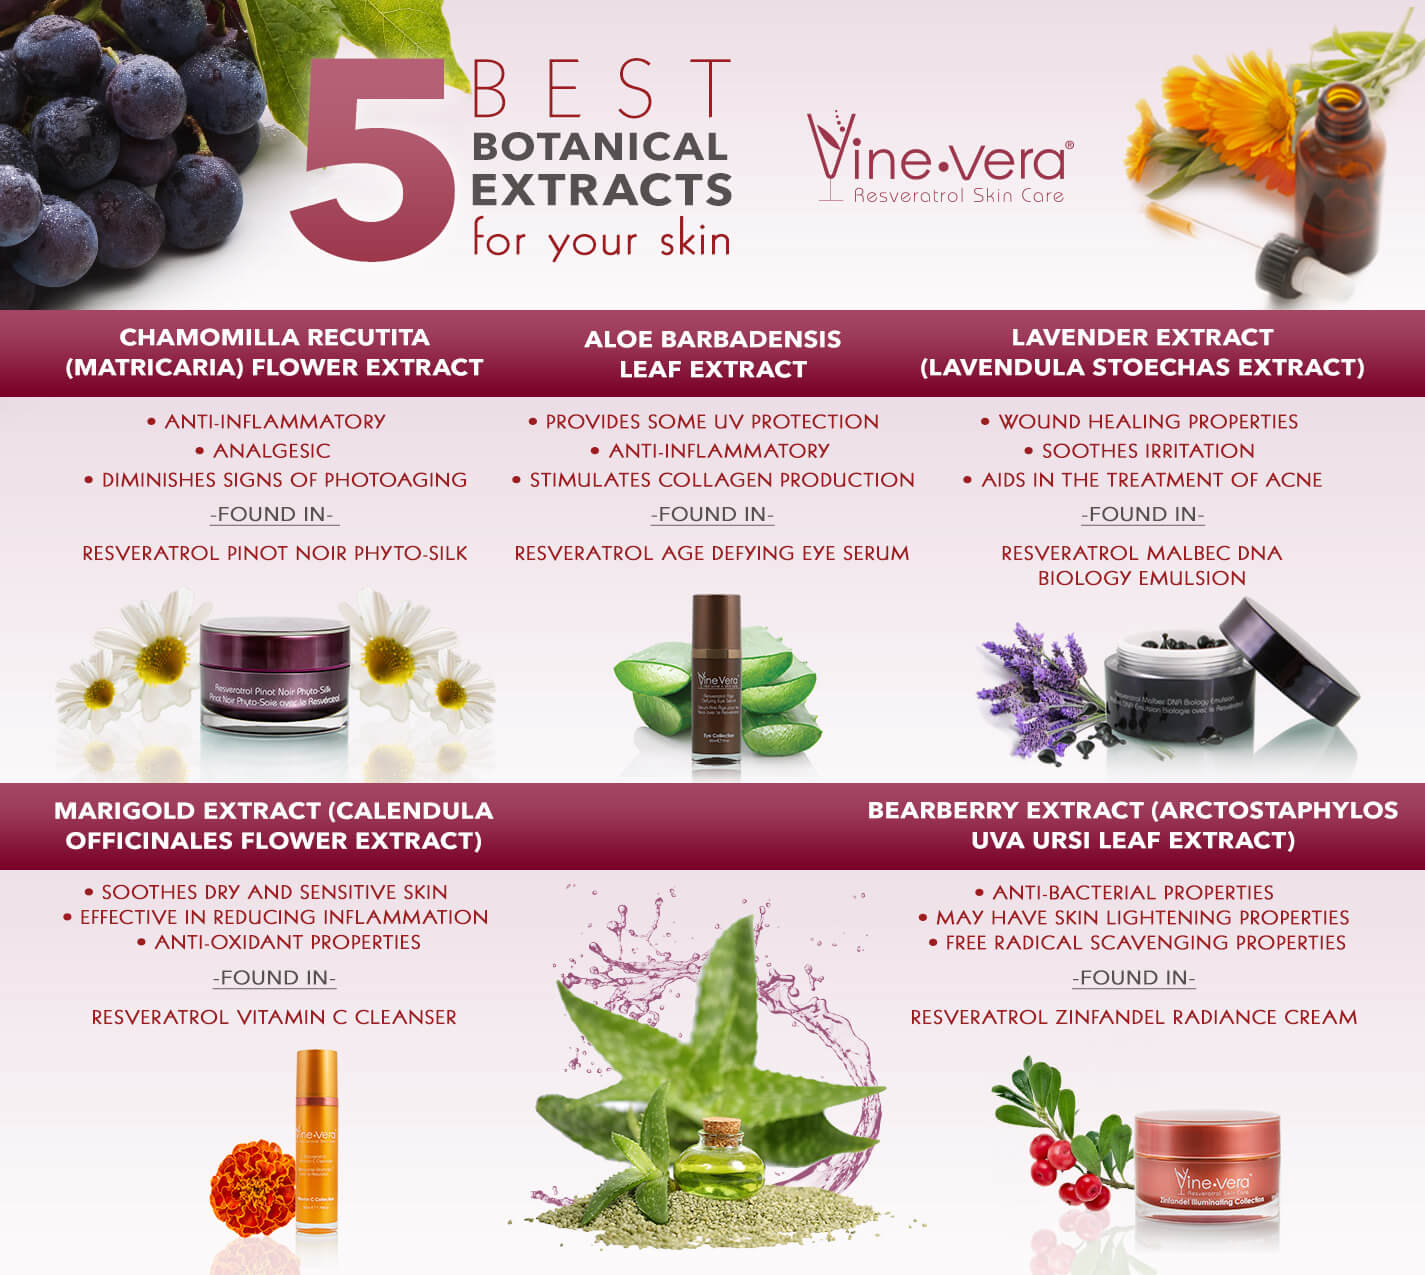 Infographic on the 5 best botanicals for the skin